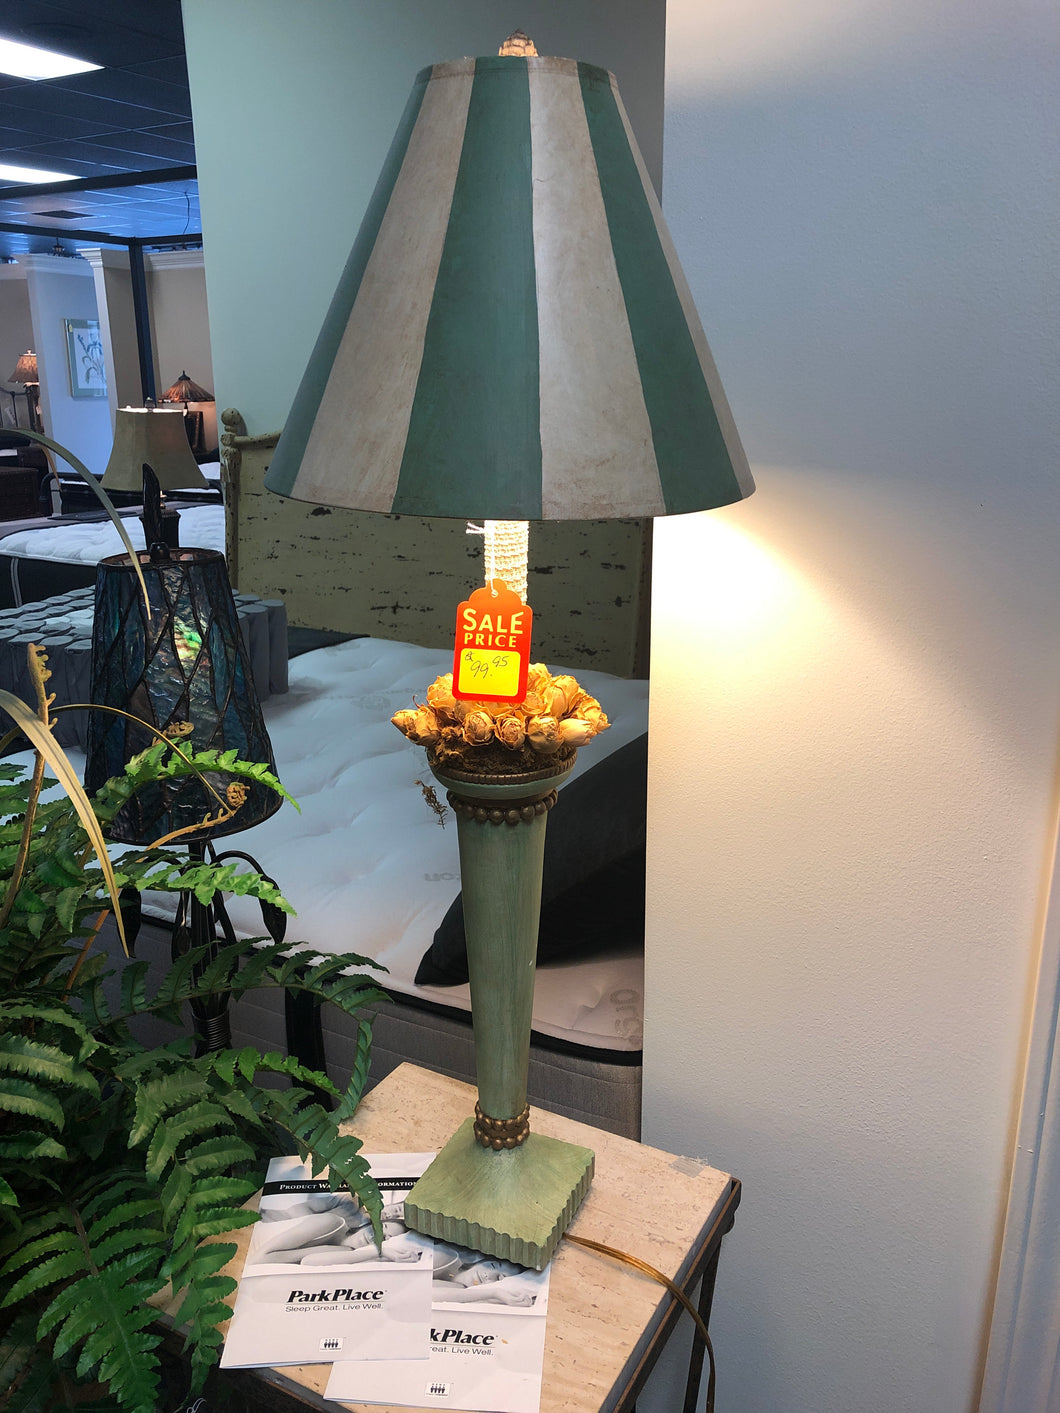 Painted Shade Rose Lamp - Ensley Fairfield Mattress Co.